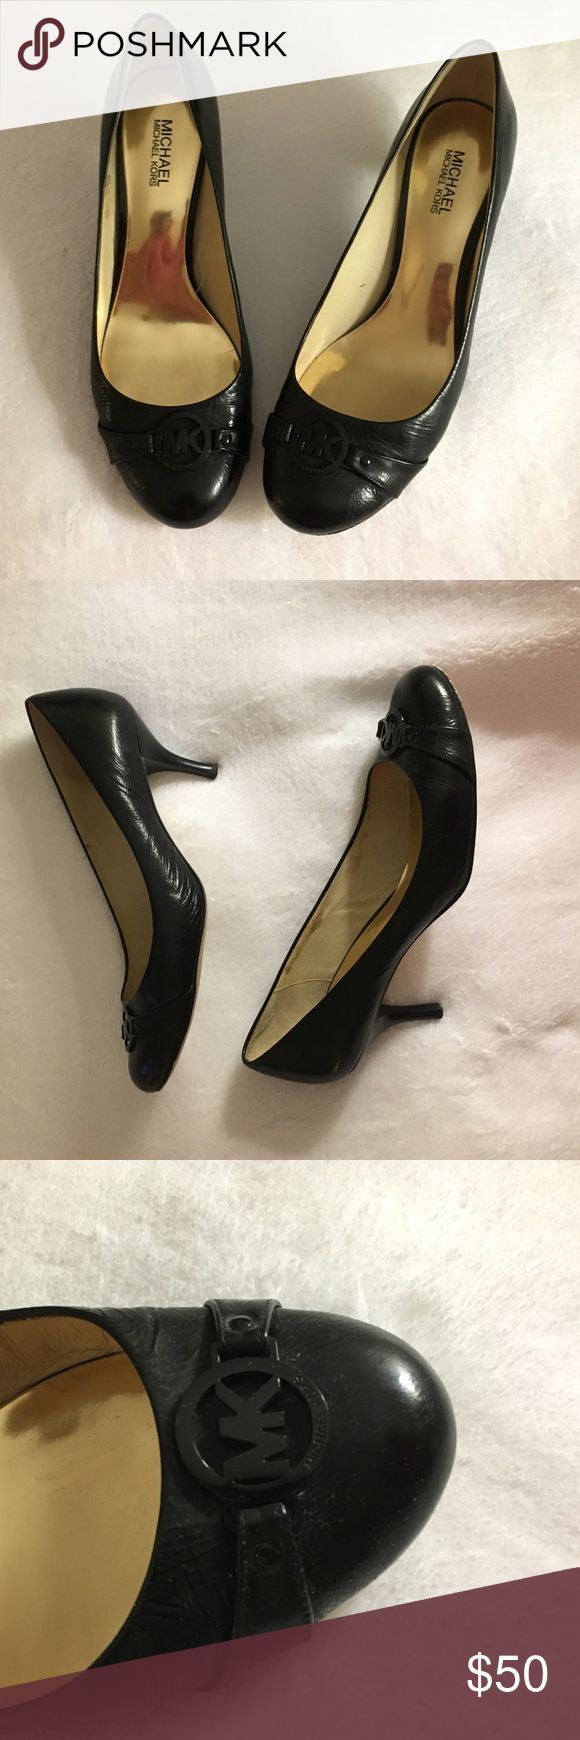 Michael Kors Black Heels Black Michael Kors Heels. Great used condition. Broken it. Signs of wear are mild. No obvious signs of wear while being worn. Great black MK logo buckle on toe. Very well made. Size 11. MICHAEL Michael Kors Shoes Heels